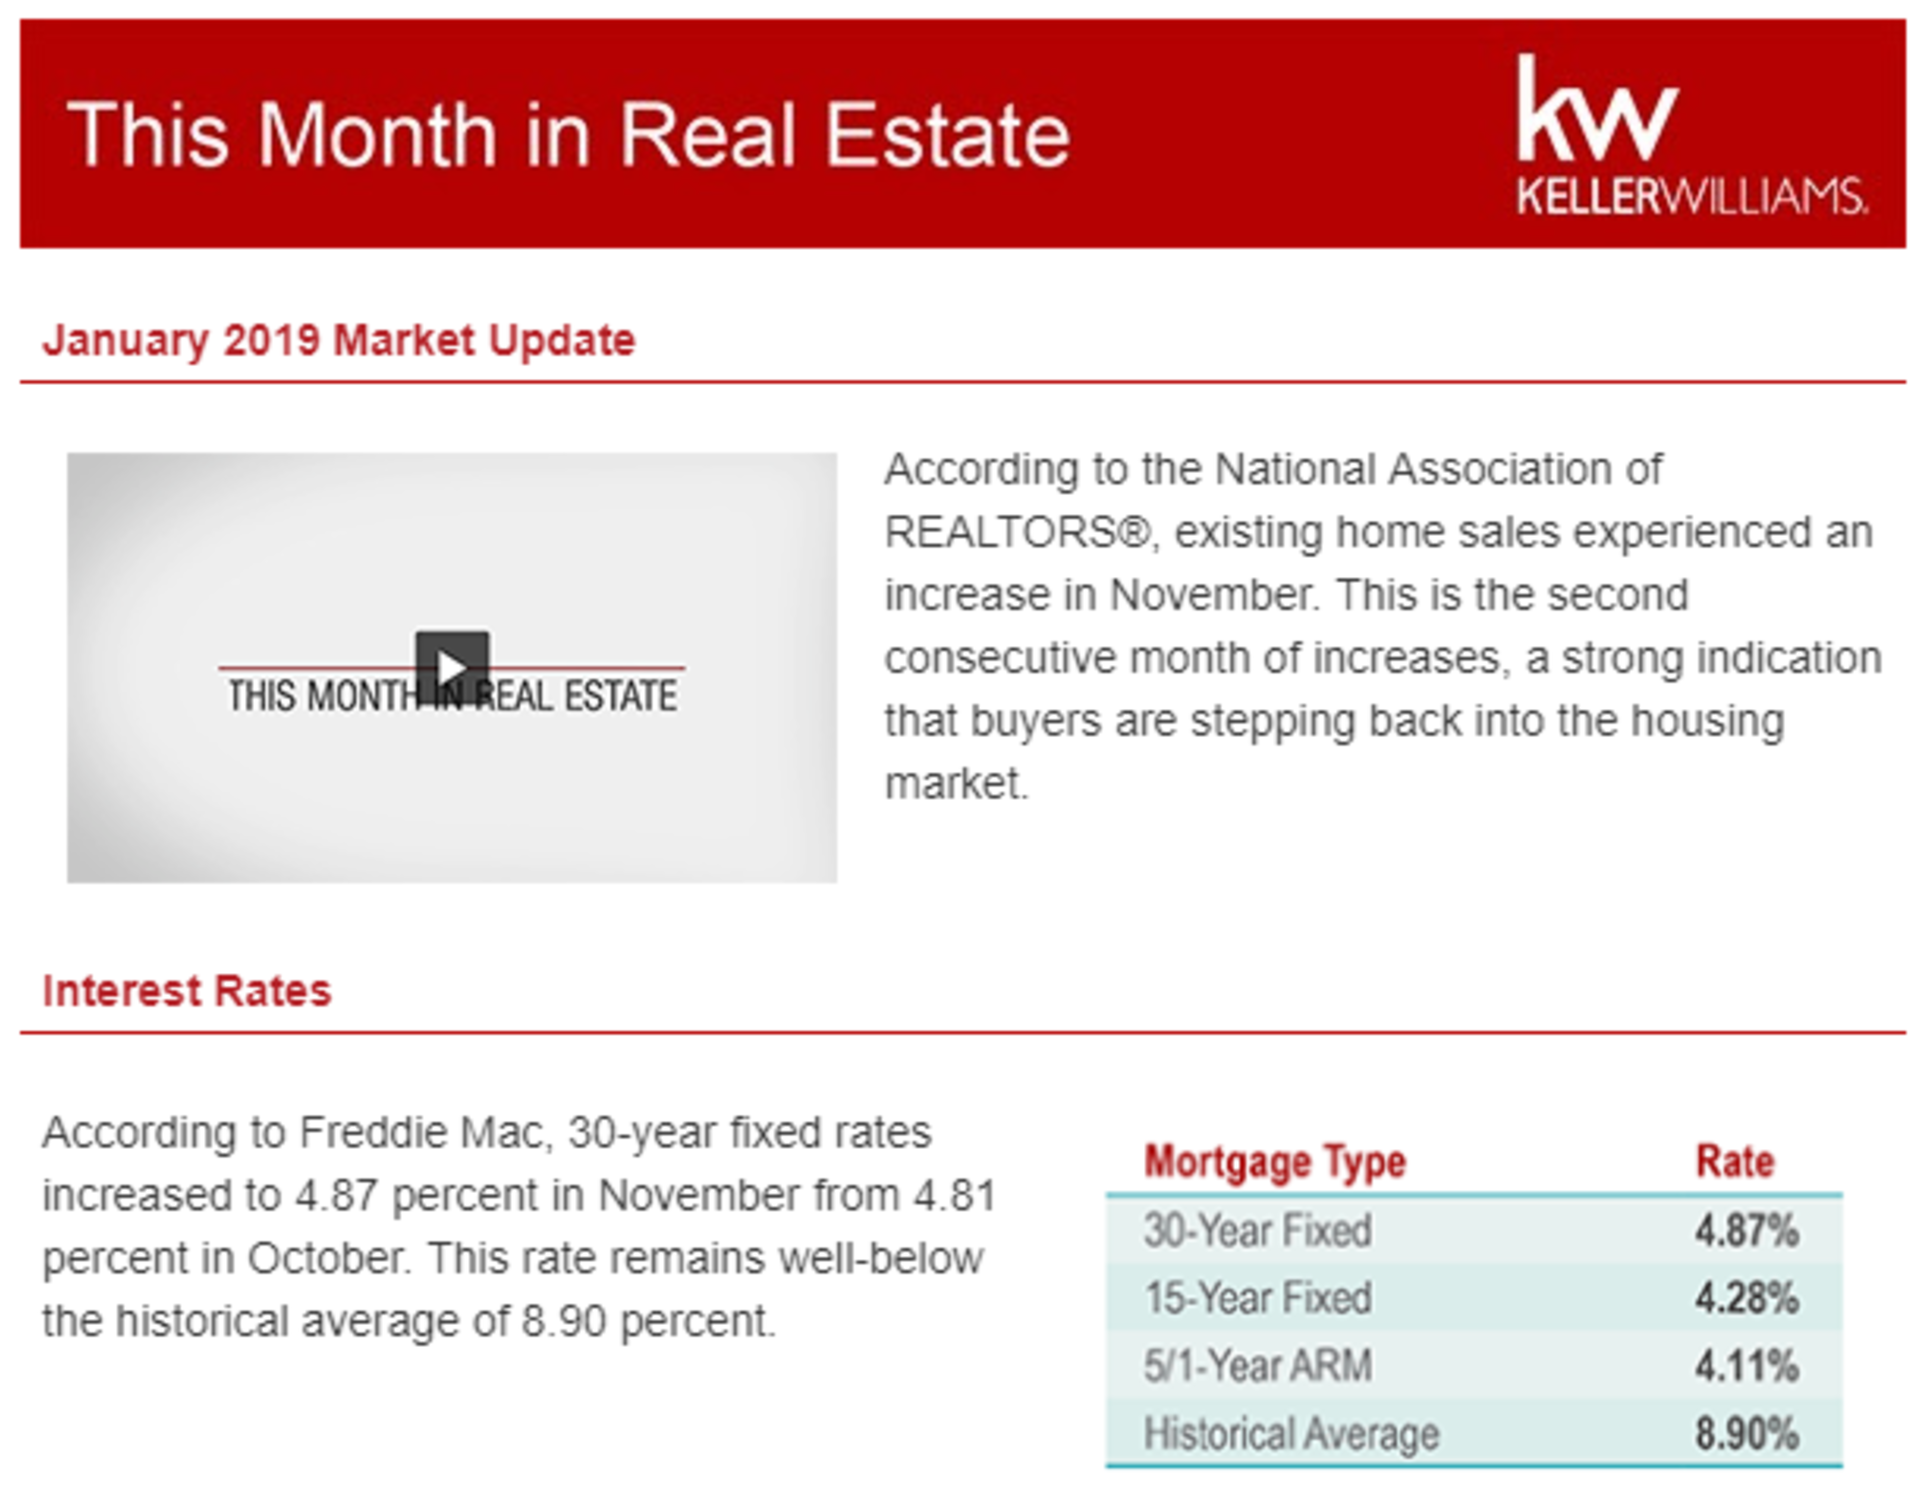 This Month in Real Estate for January 2019